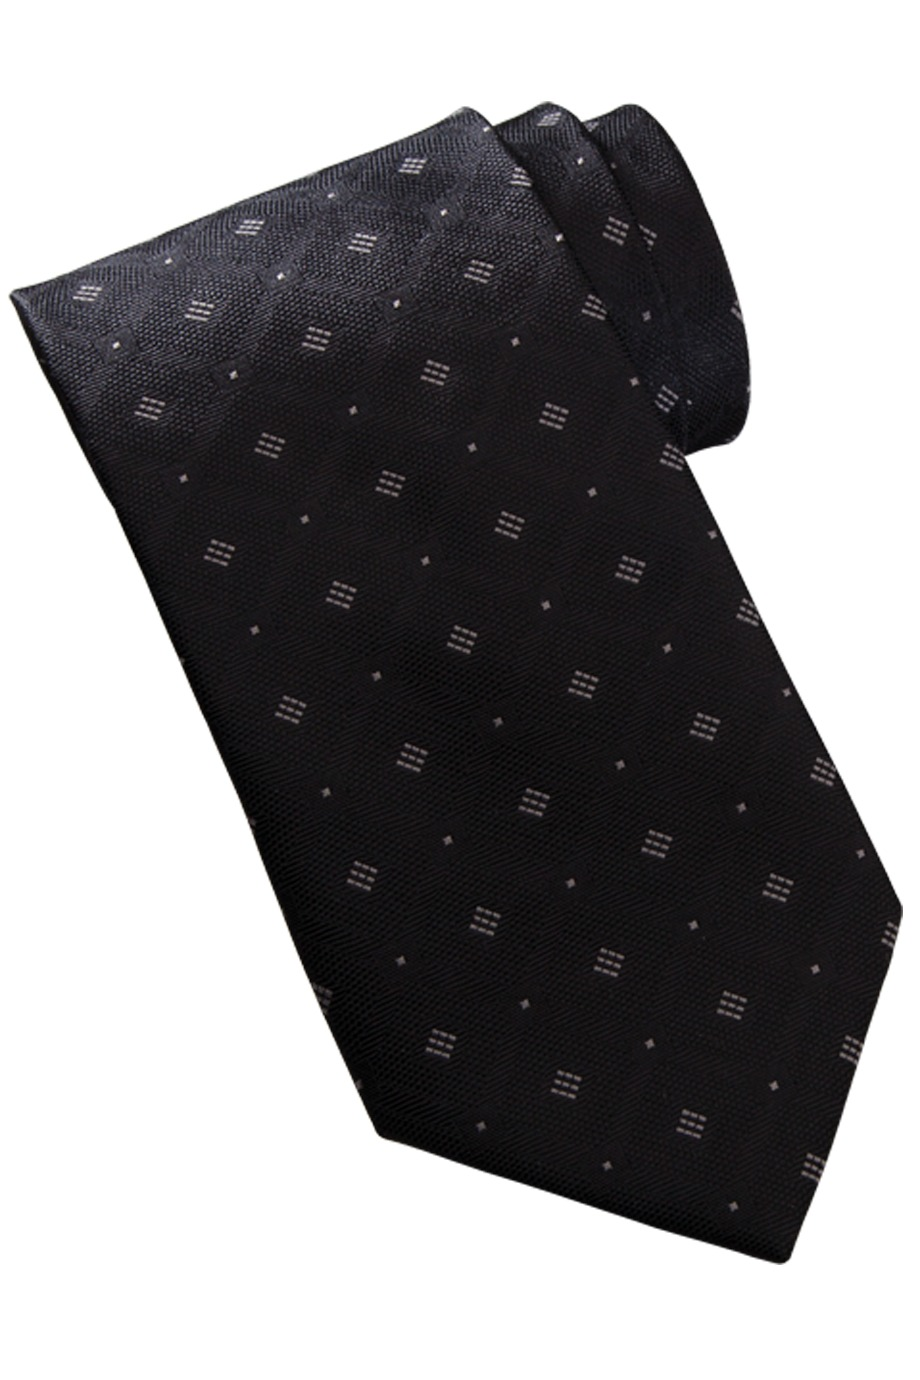 Edwards Garment DT00 - Men's Dot And Diamond Pattern ...